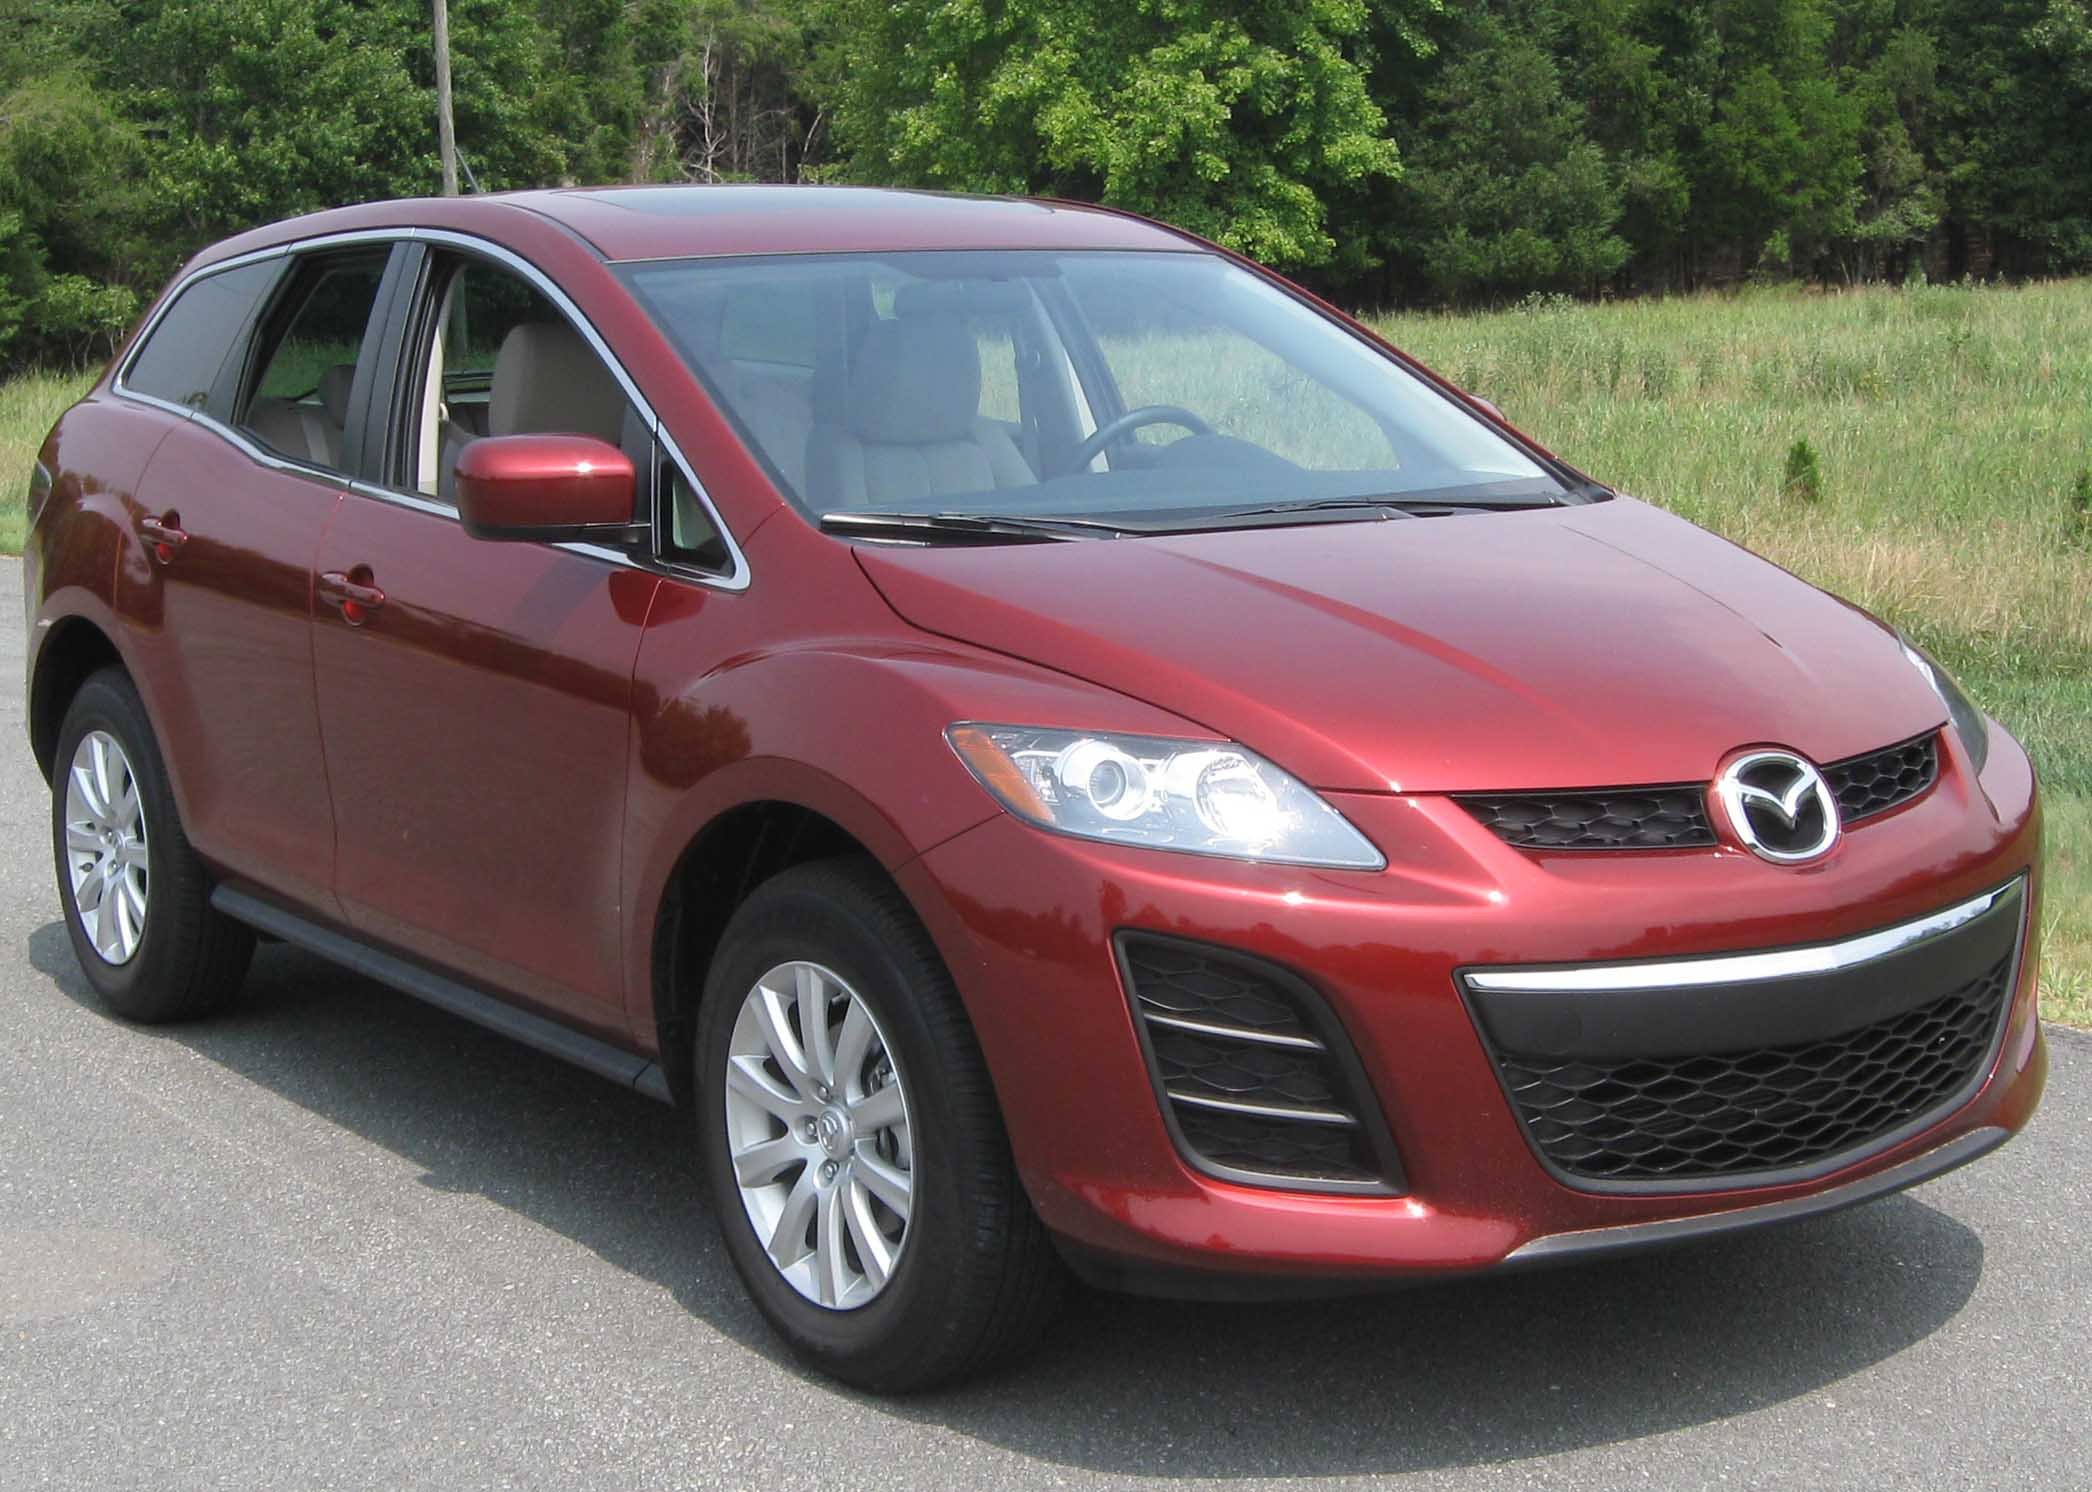 2010 mazda cx 7 information and photos zombiedrive. Black Bedroom Furniture Sets. Home Design Ideas